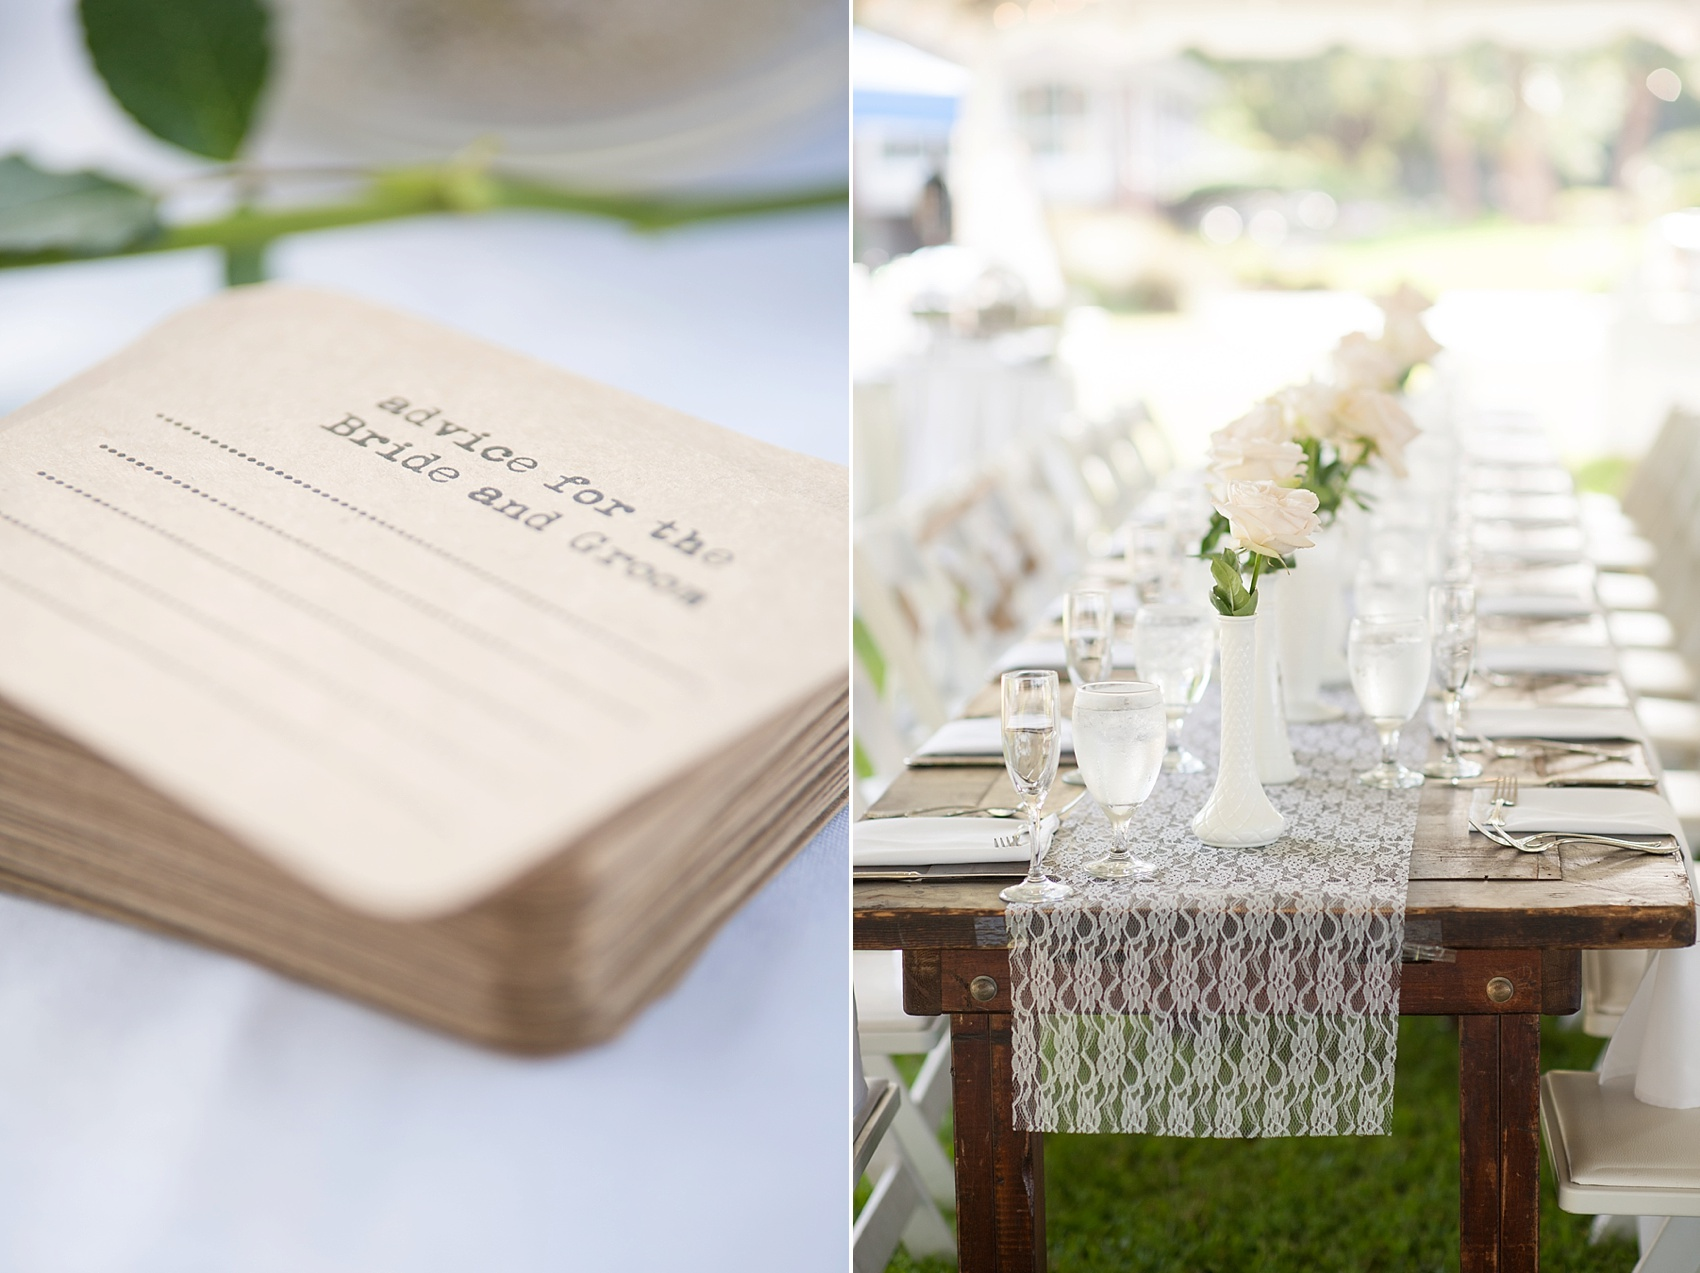 Tented wedding reception for a Haig Point wedding in South Carolina, off the coast of Hilton Head. Farm tables and white roses and vases complete the look. Photos by Mikkel Paige Photography. Advice cards were available too!